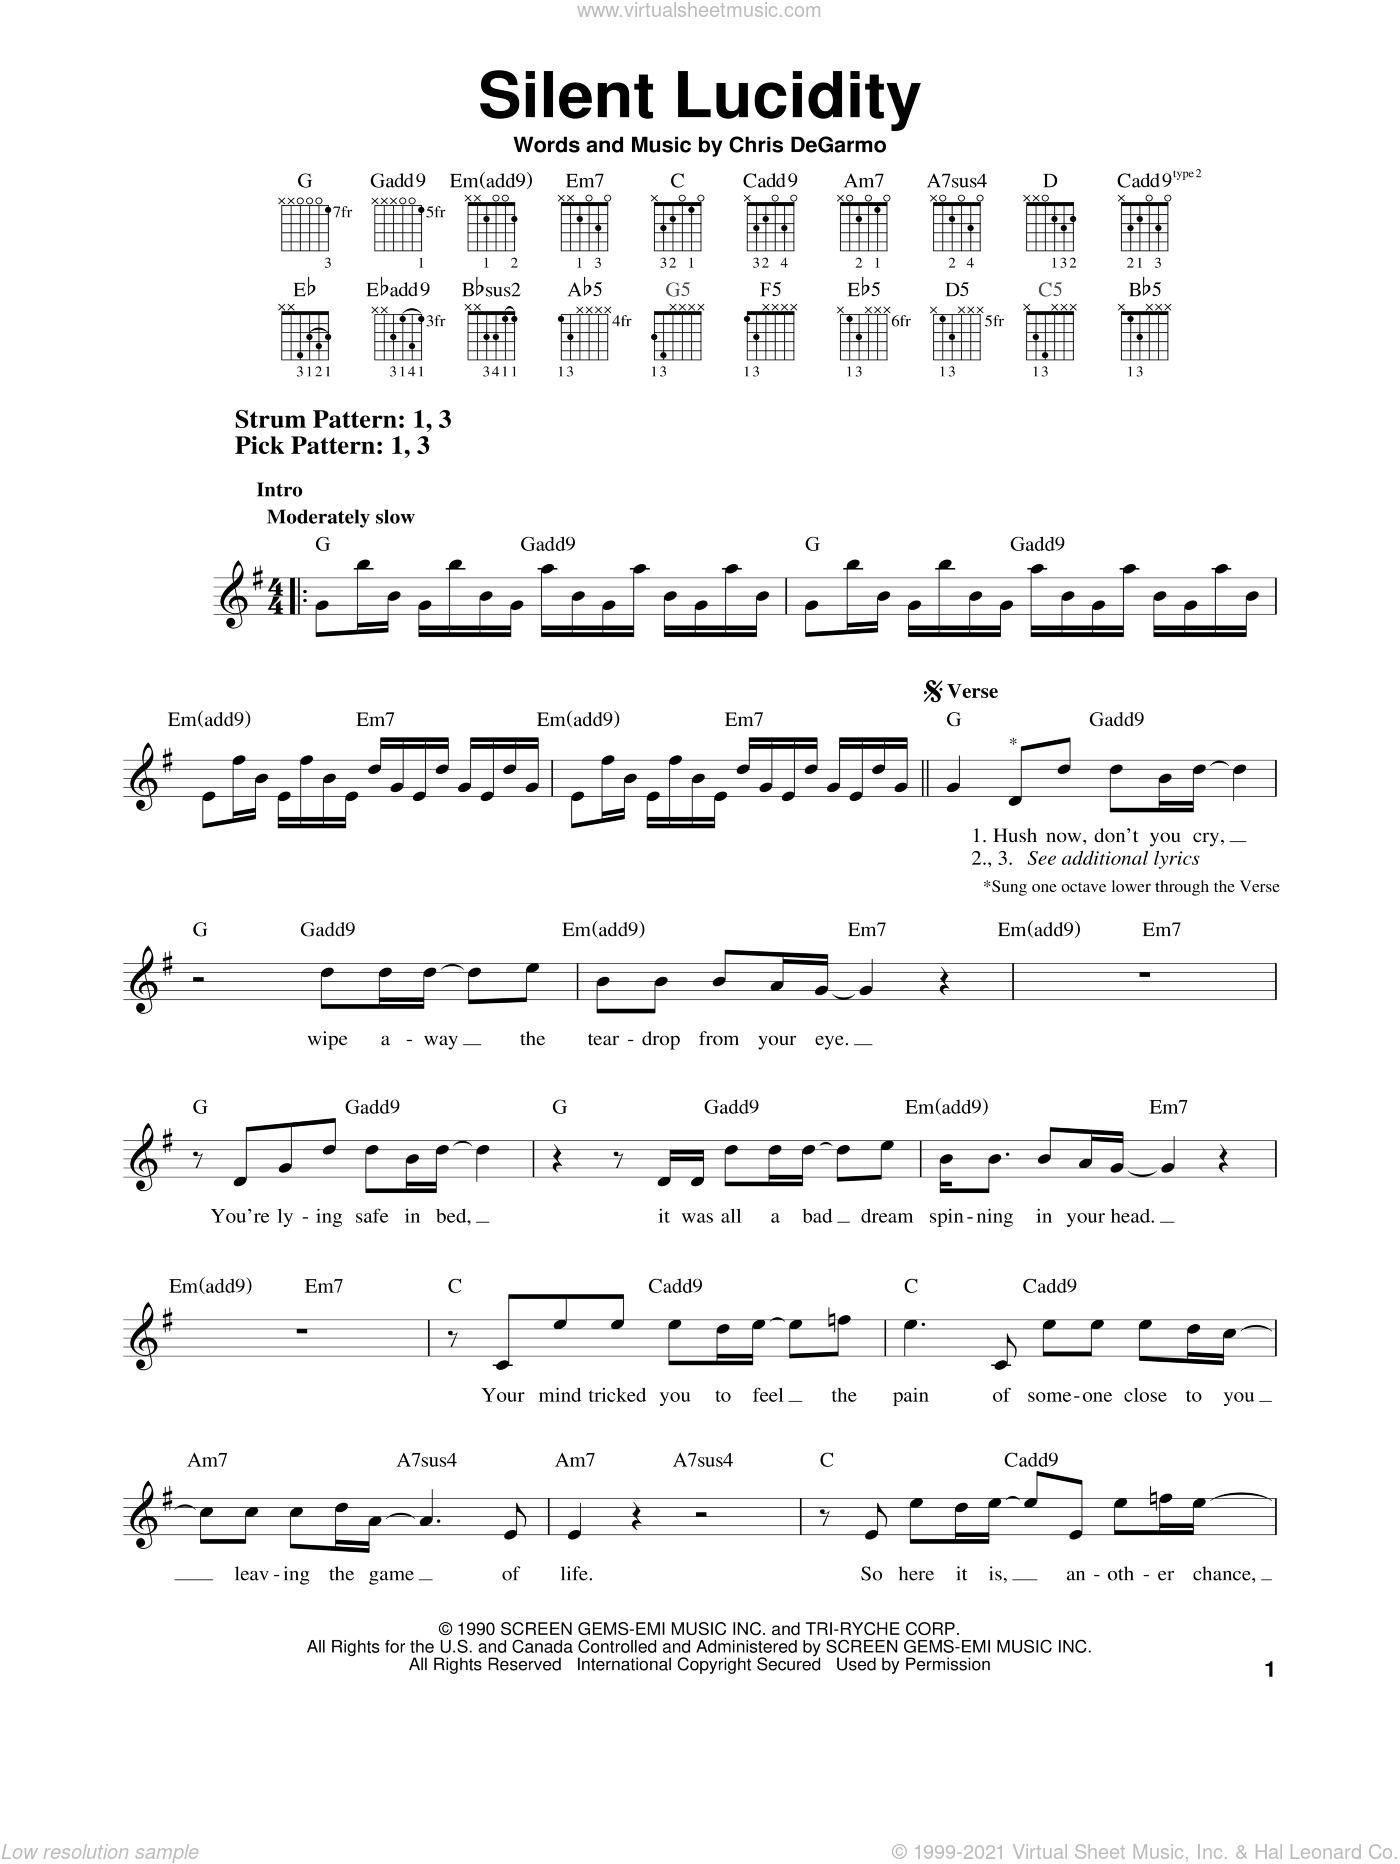 Queensryche - Silent Lucidity sheet music for guitar solo (chords) v2